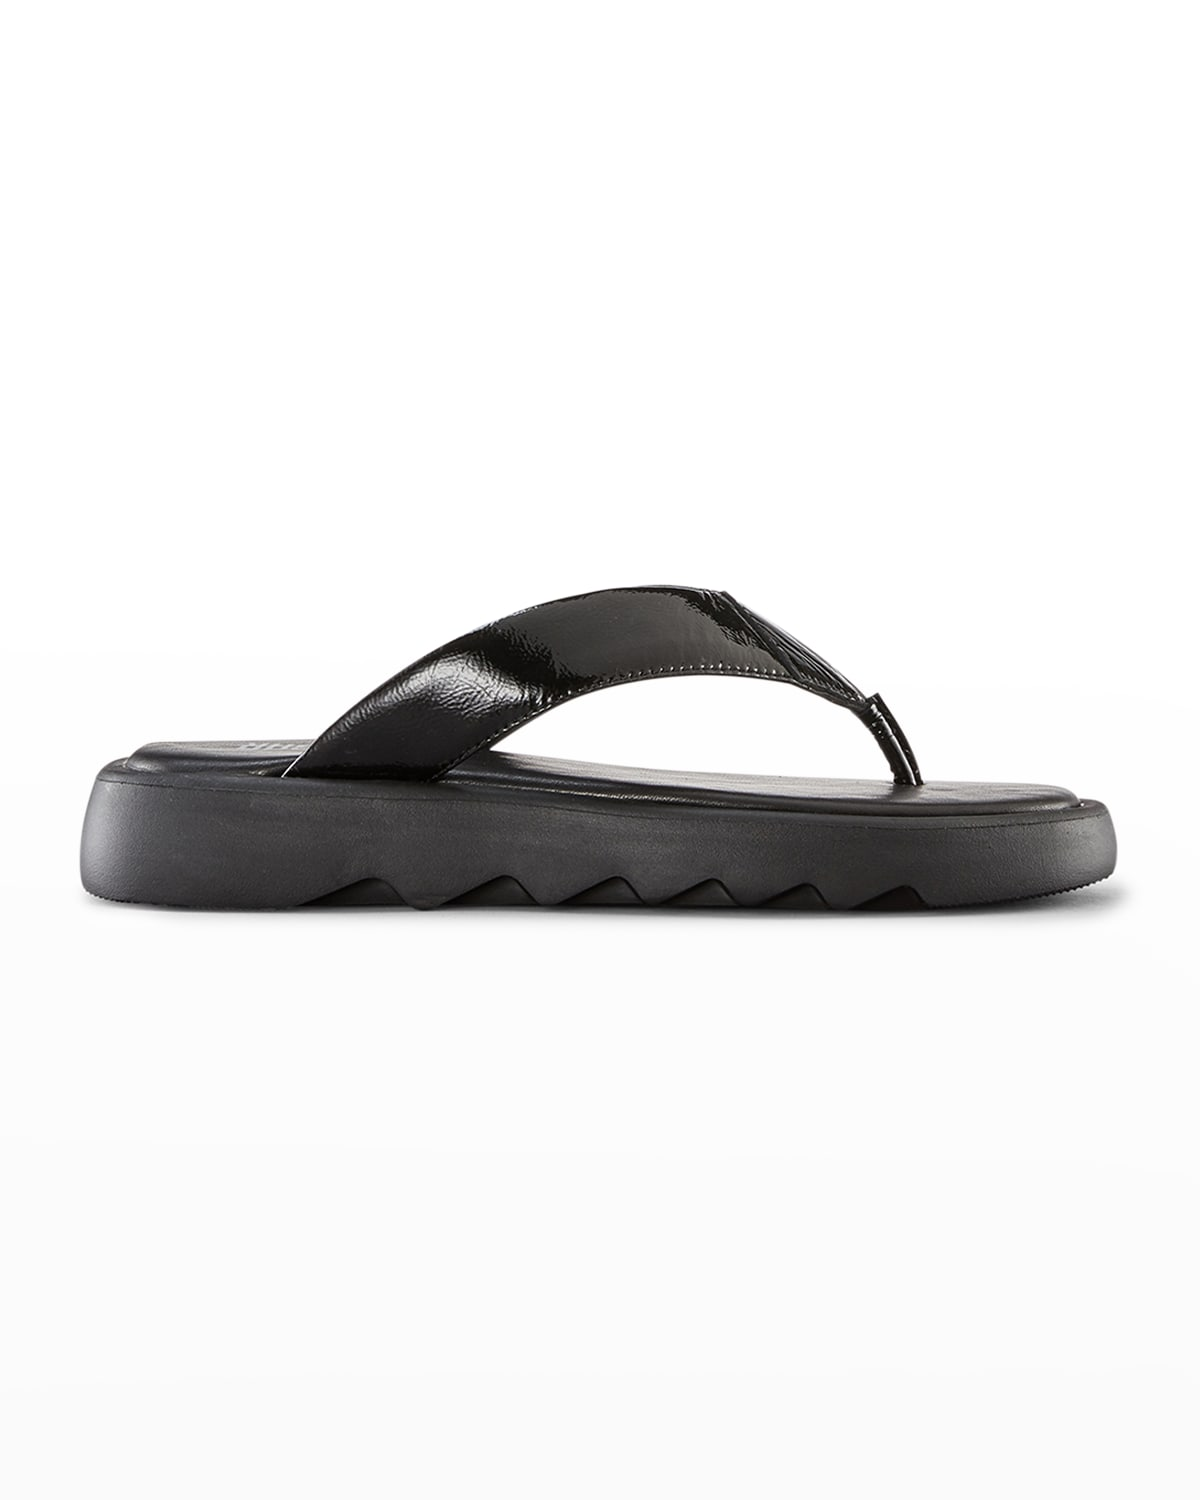 Jacy Patent Leather Thong Sandals